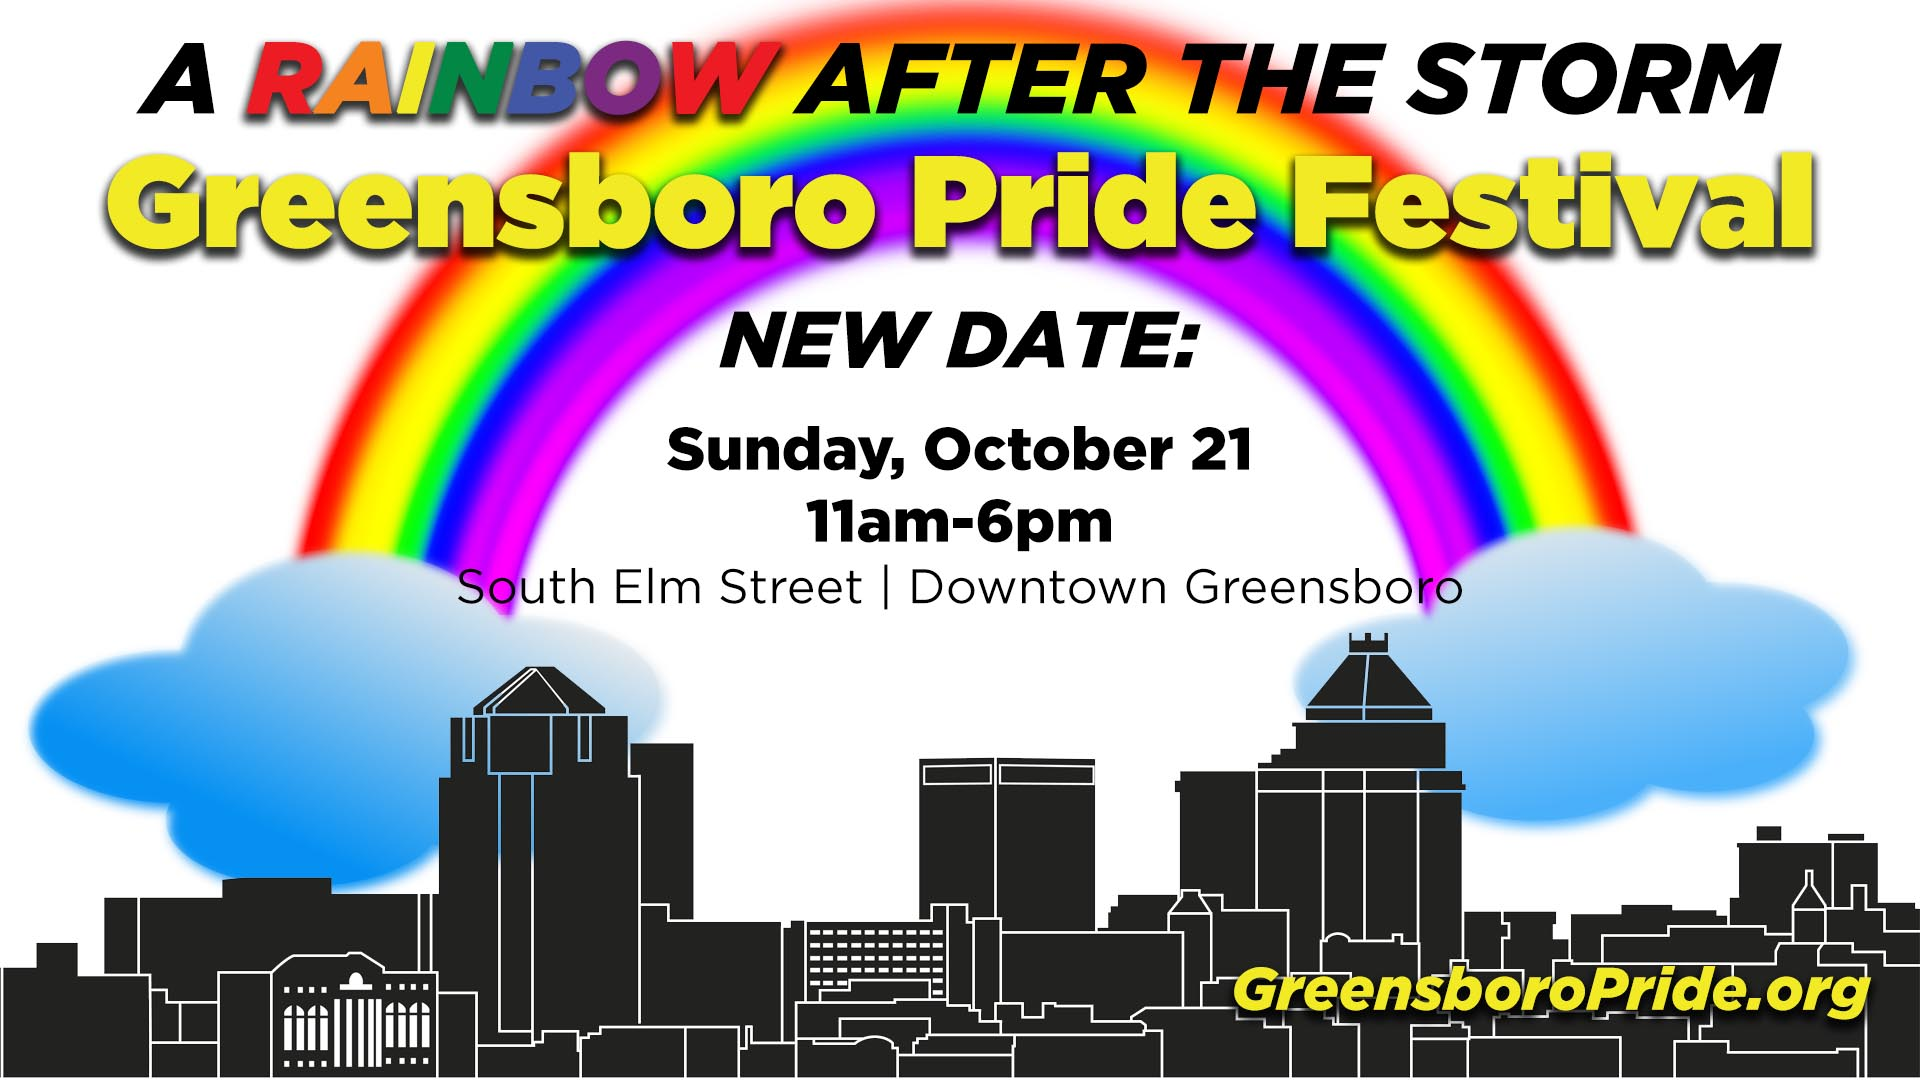 The Rainbow After The Storm: Greensboro Pride Festival 2018